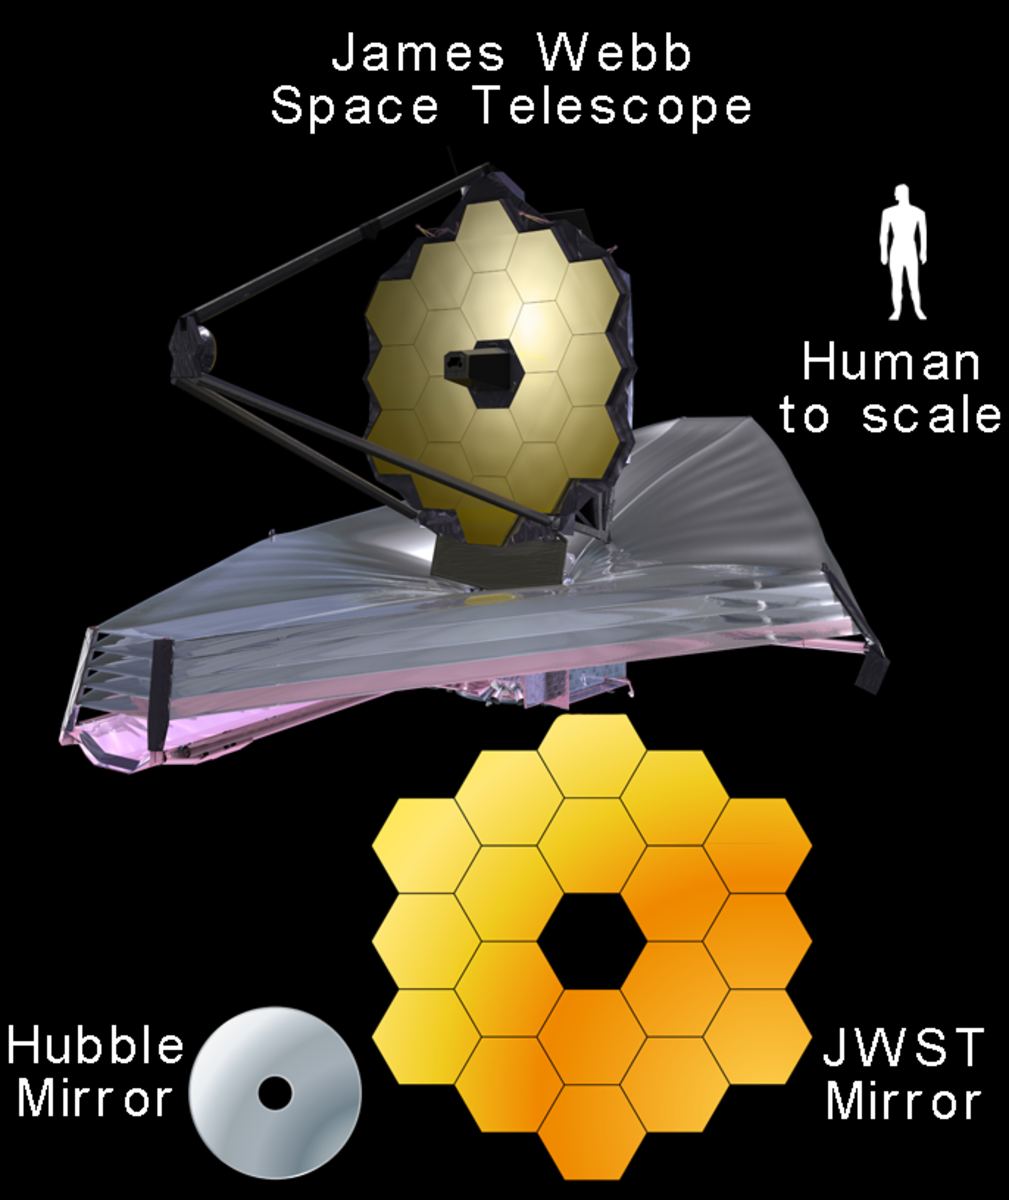 The James Webb Space Telescope is many times more powerful than Hubble.